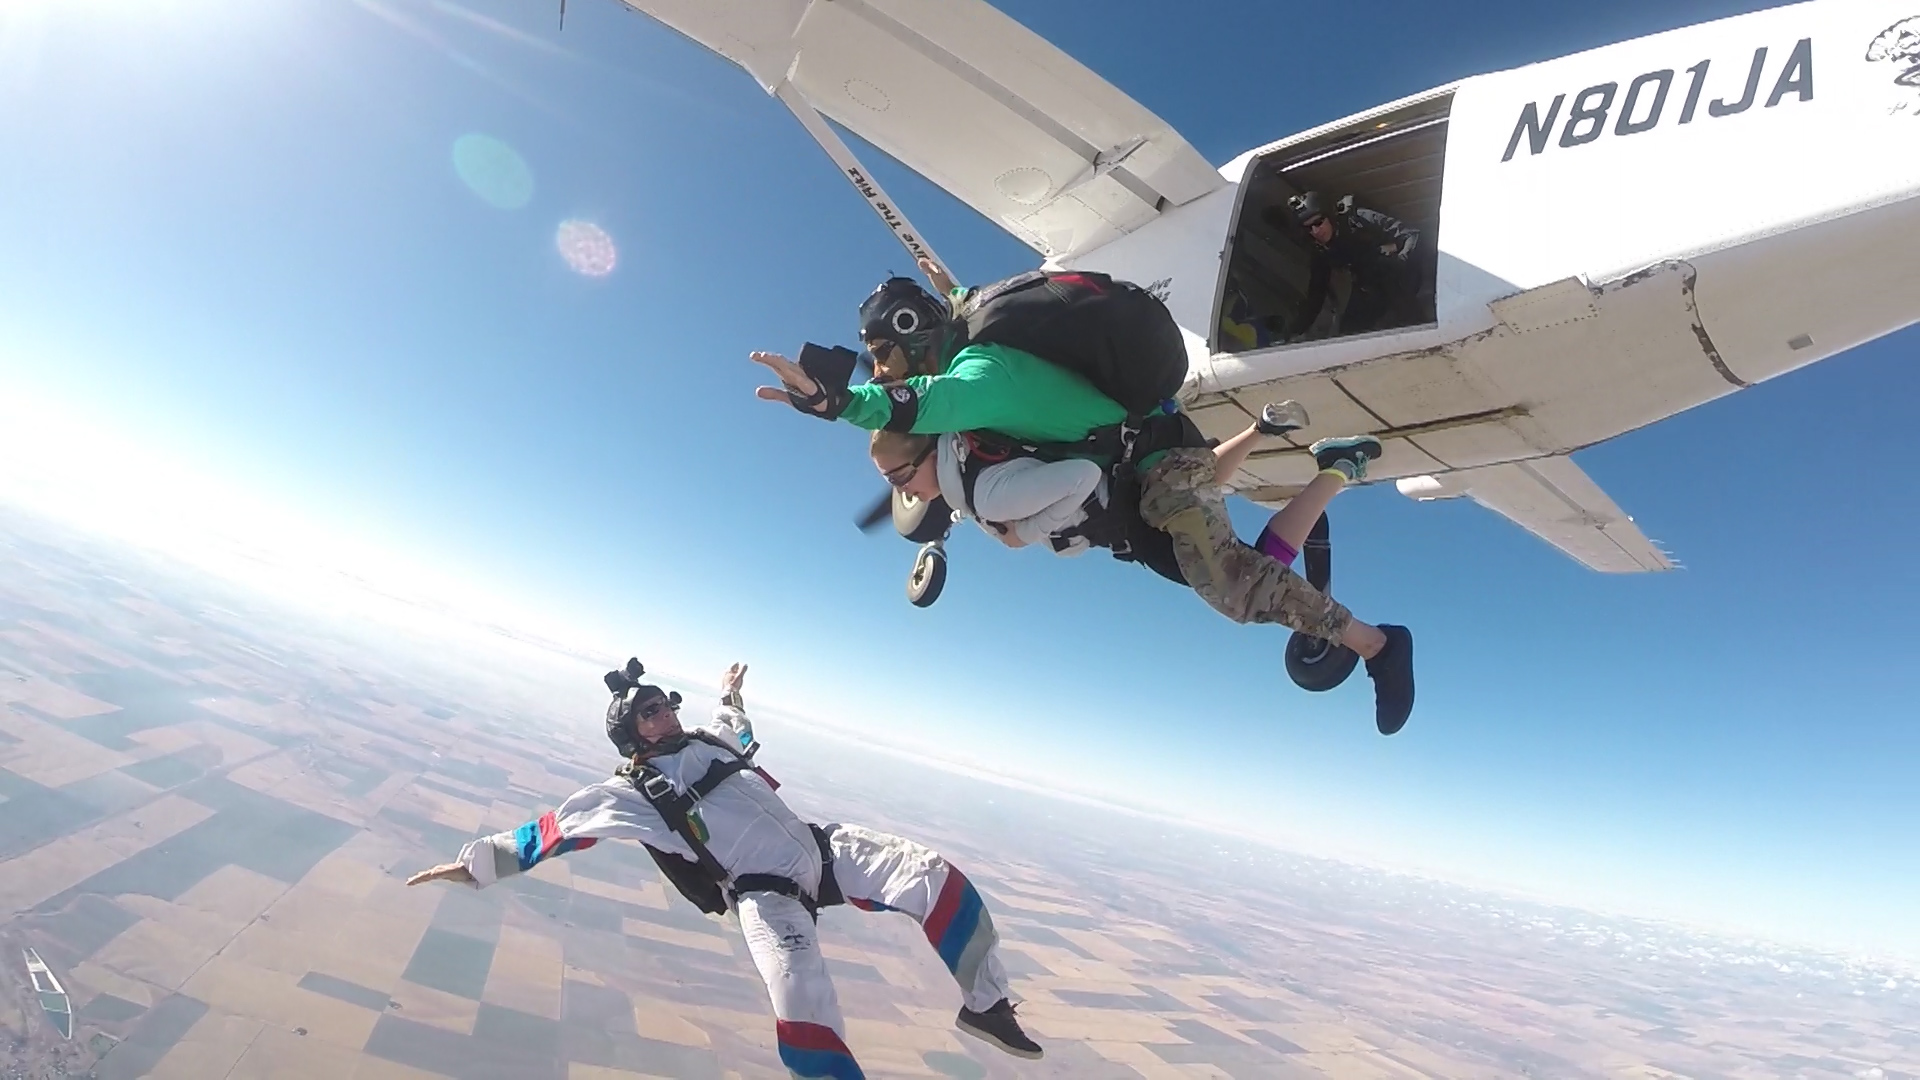 Free Fall Wallpaper For Iphone Skydiving Wallpapers High Quality Download Free